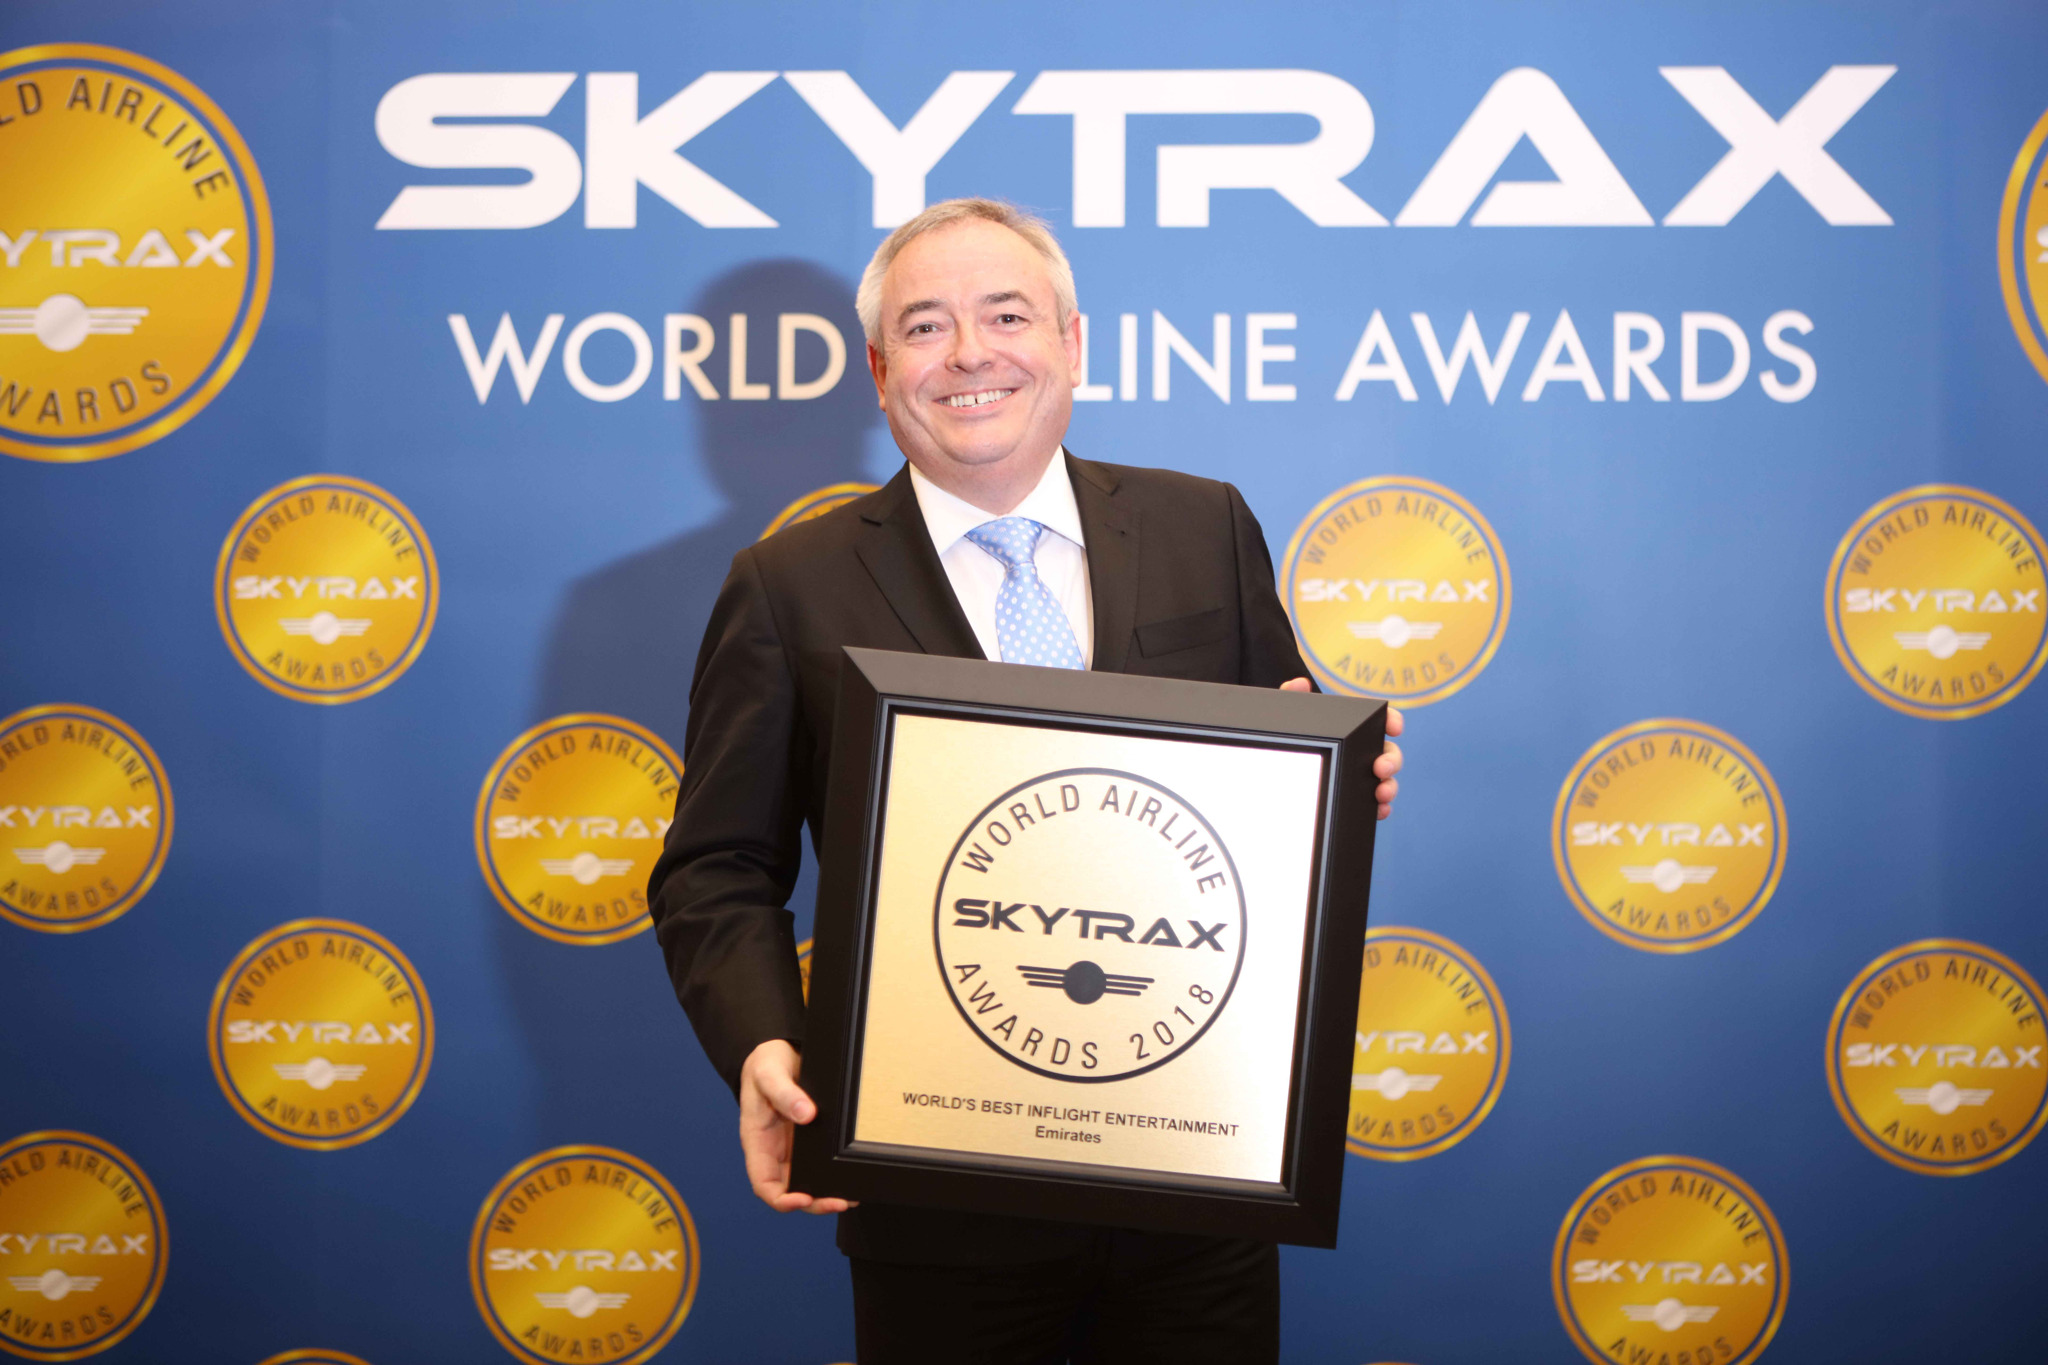 Emirates wins 14th consecutive World's Best Inflight Entertainment